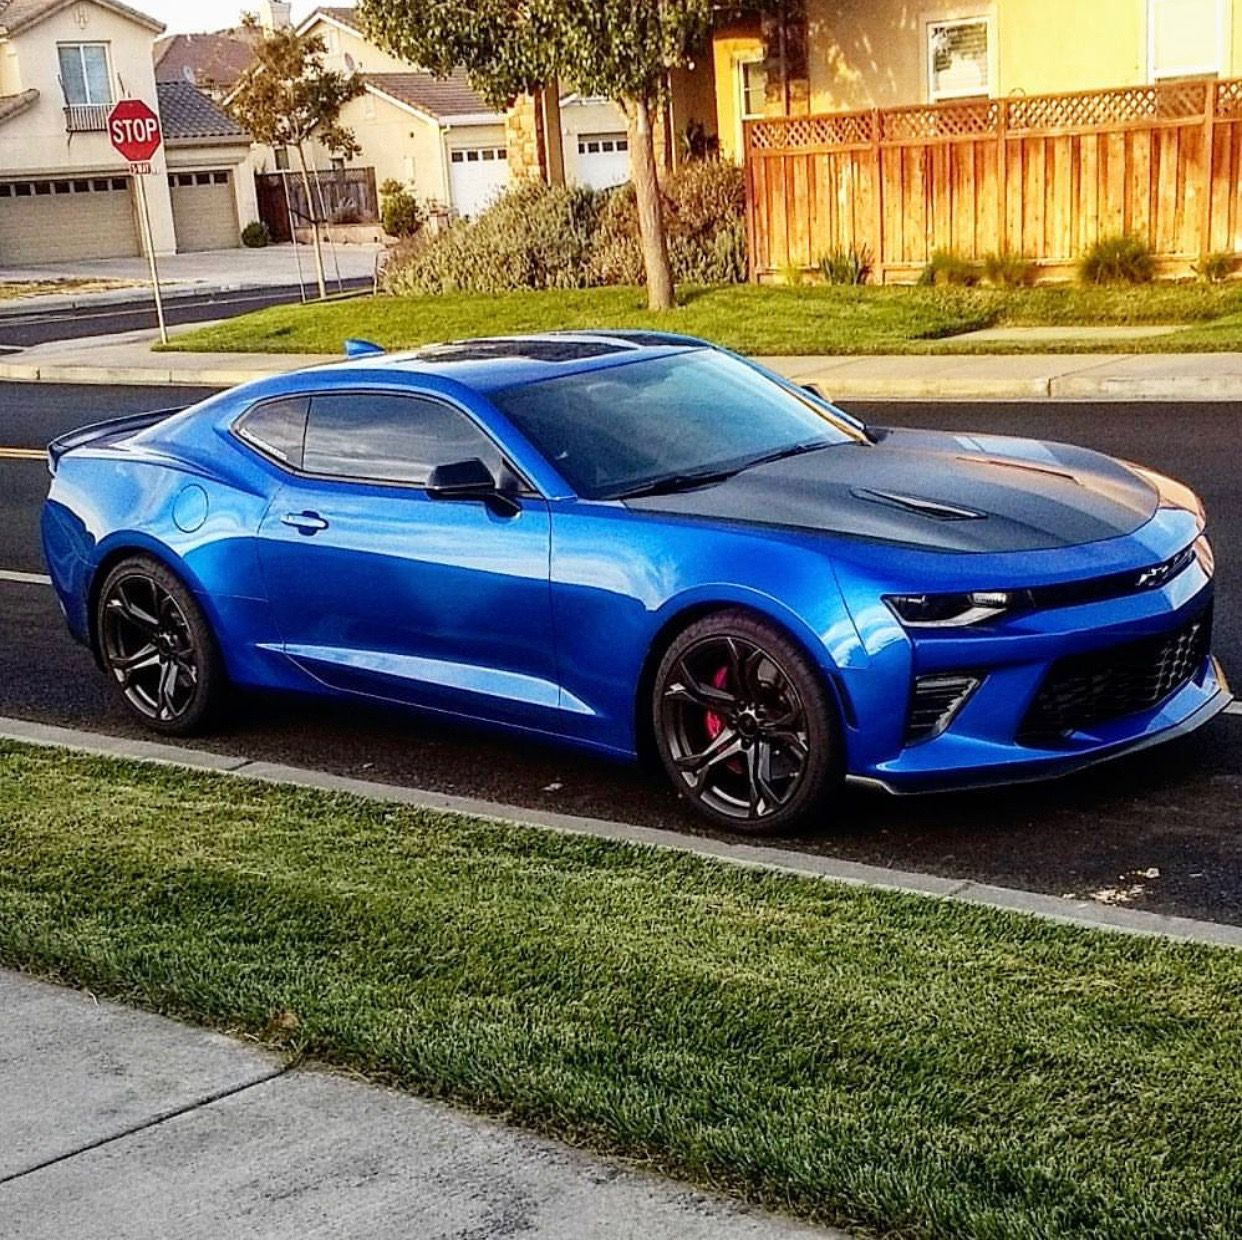 Camaro chevy camaro ss 1le : Chevrolet Camaro SS 1LE painted in Hyper Blue Photo taken by ...